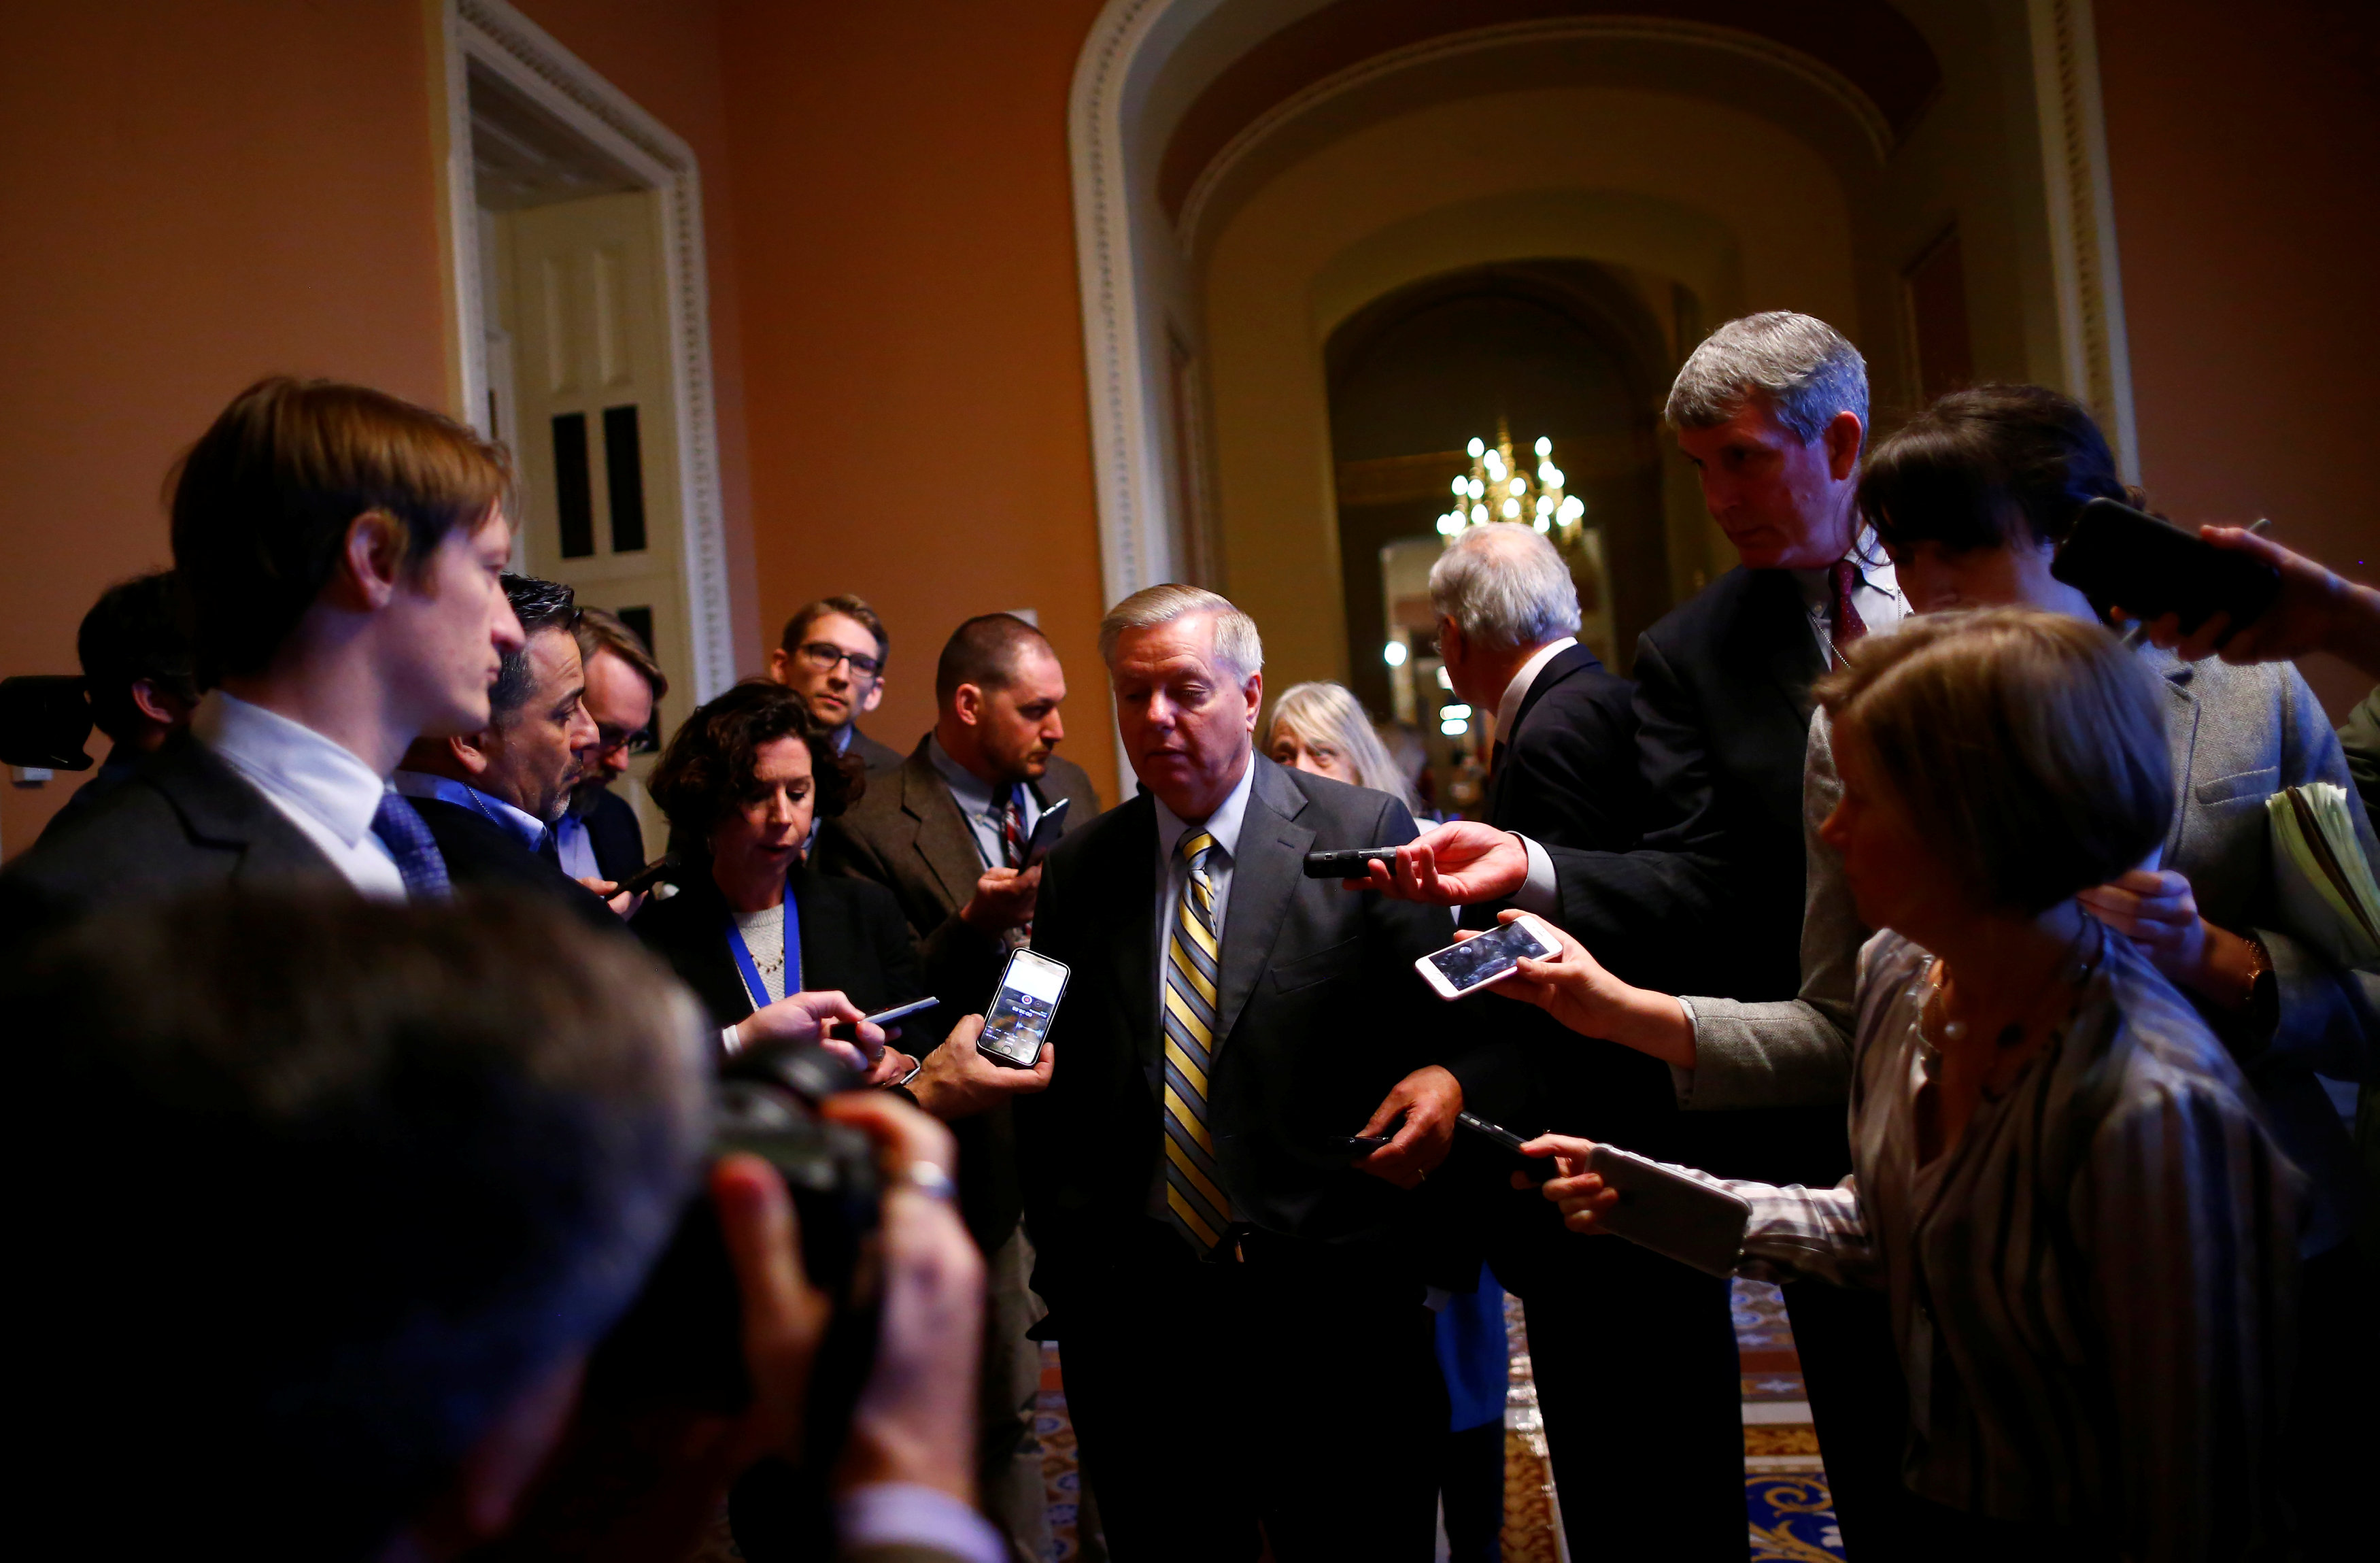 U.S. Sen. Lindsay Graham speaks to reporters outside the Senate chamber on Capitol Hill in Washington, U.S. February 7, 2018.